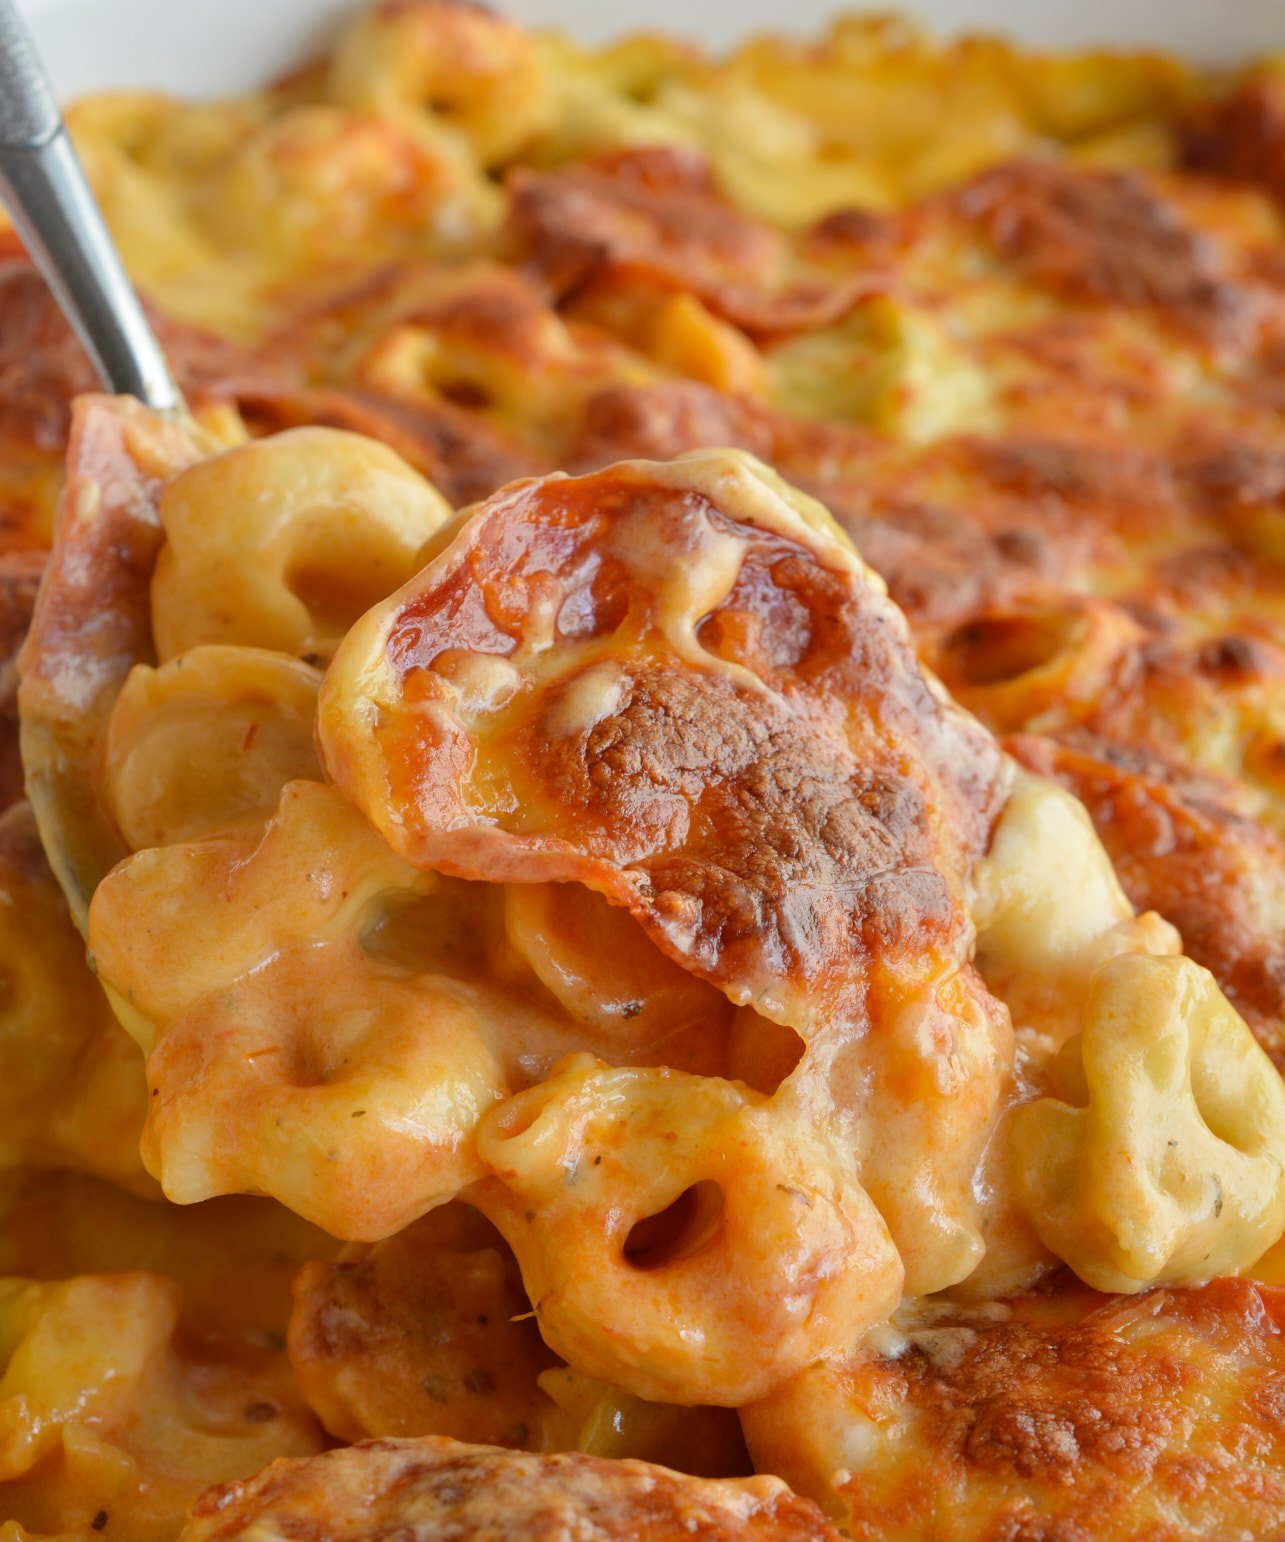 If you love macaroni & cheese and pepperoni pizza you will flip for this Cheese Tortellini Pepperoni Pizza Casserole Recipe! This tortellini mac & cheese is combined with the flavors of pepperoni pizza then baked to bubbly, cheesy perfection. This dinner is sure to become your family's new favorite comfort food!